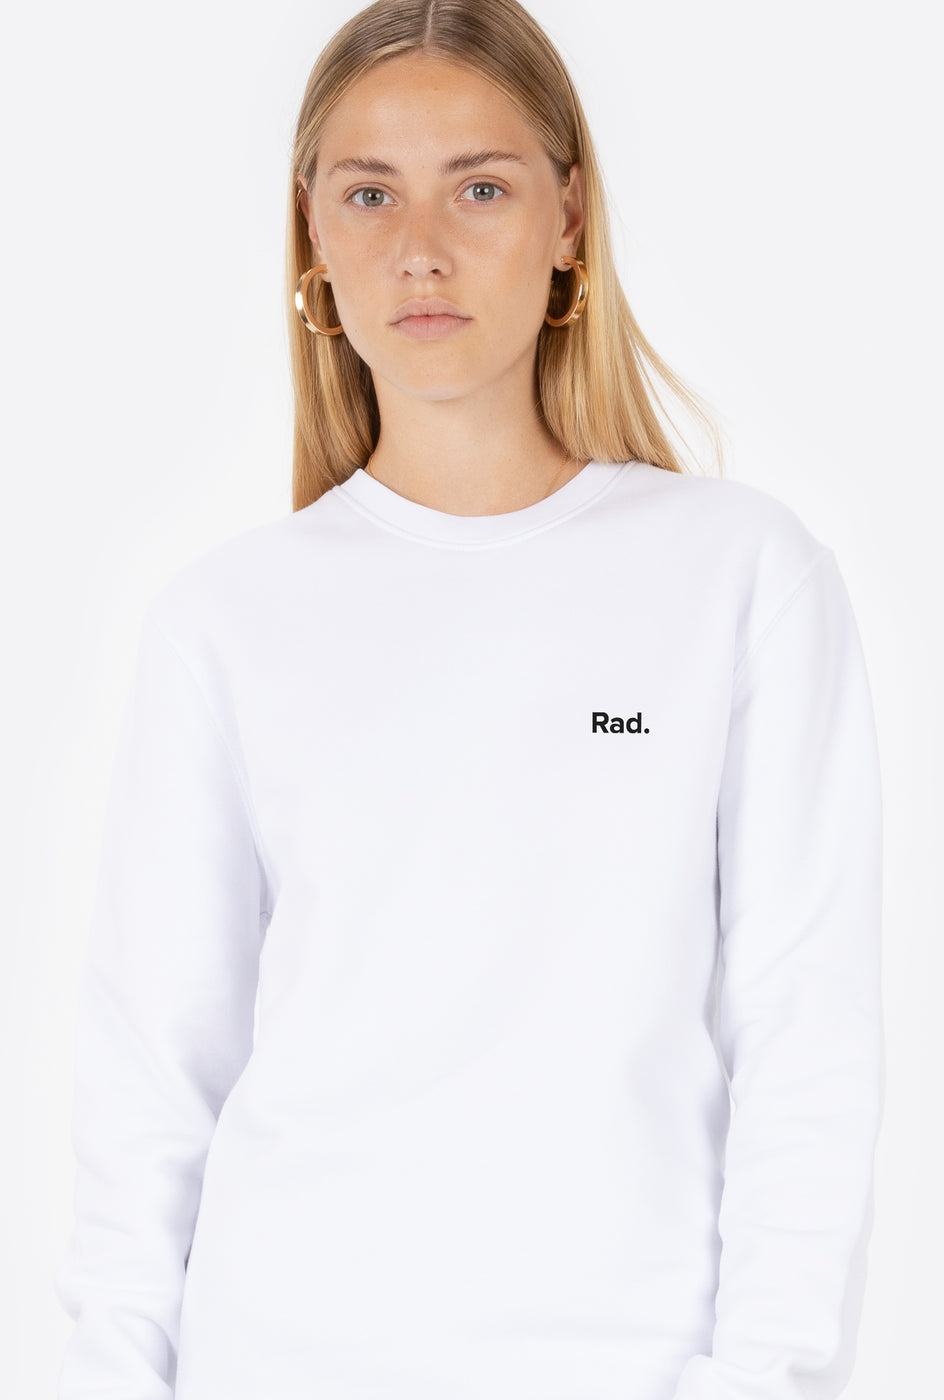 Crewneck White Classic Rad - Embroidered